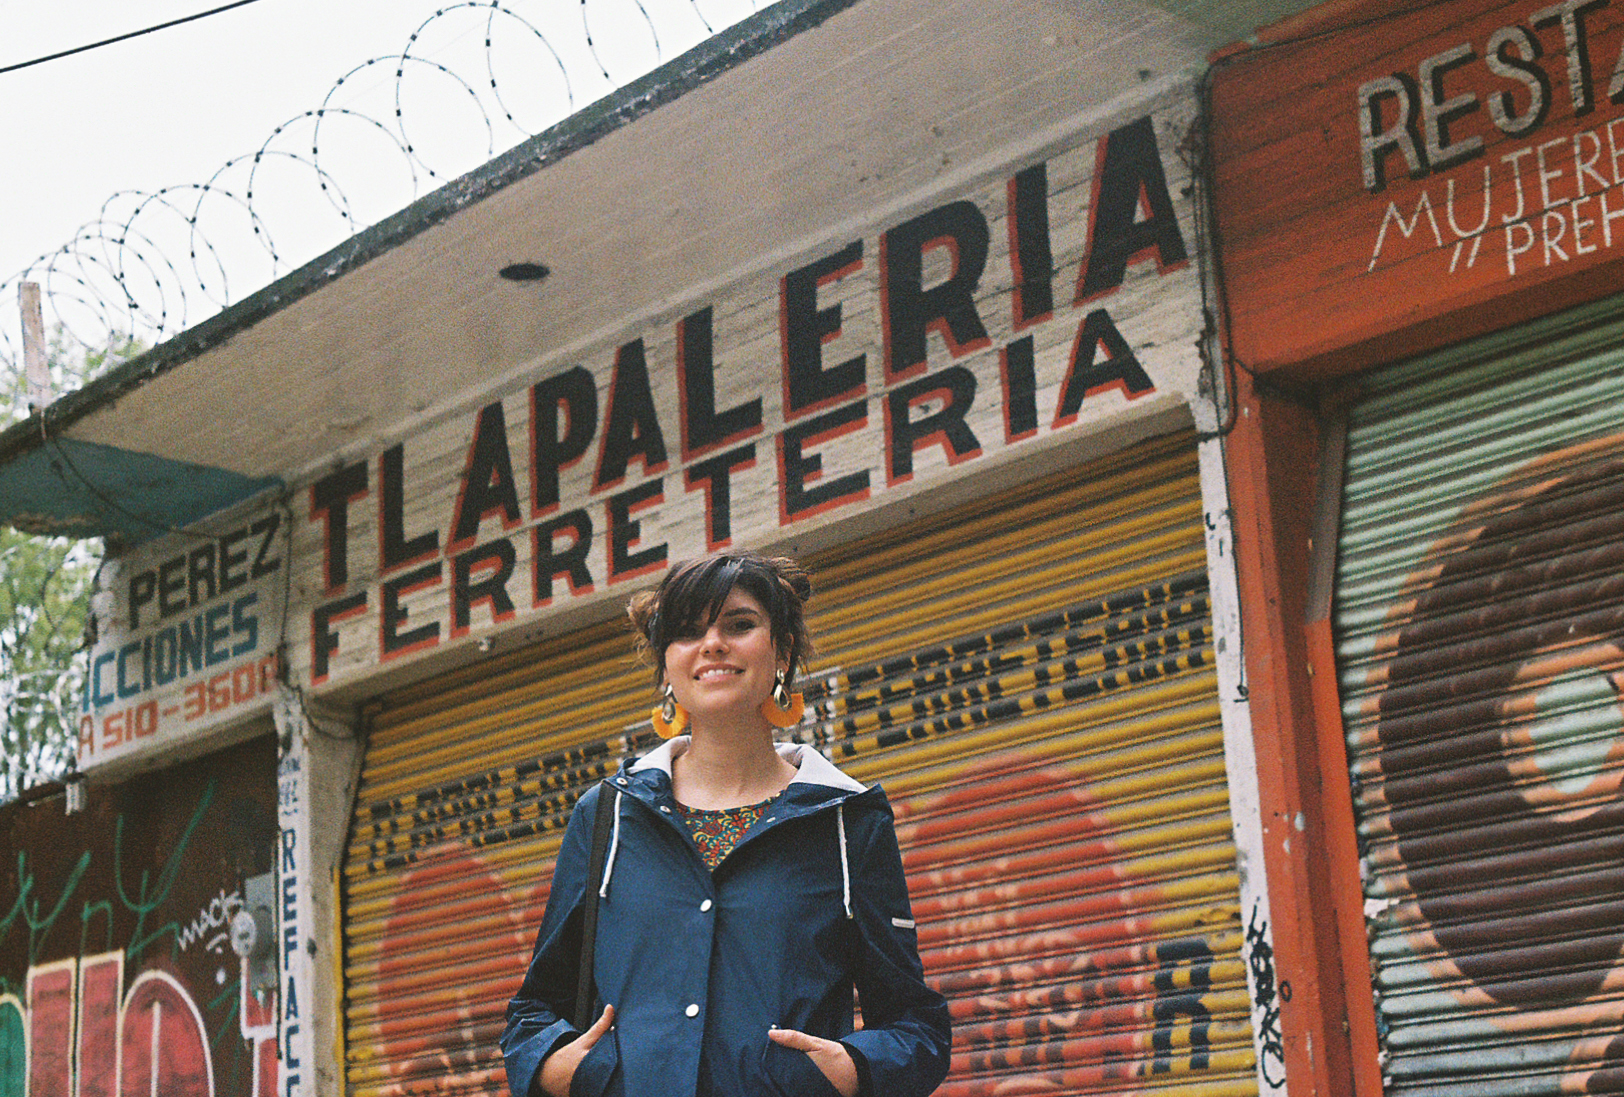 Beautiful lady standing in front of beautiful hand lettered shop fronts, Mexico City. By Nick Barry 35mm film